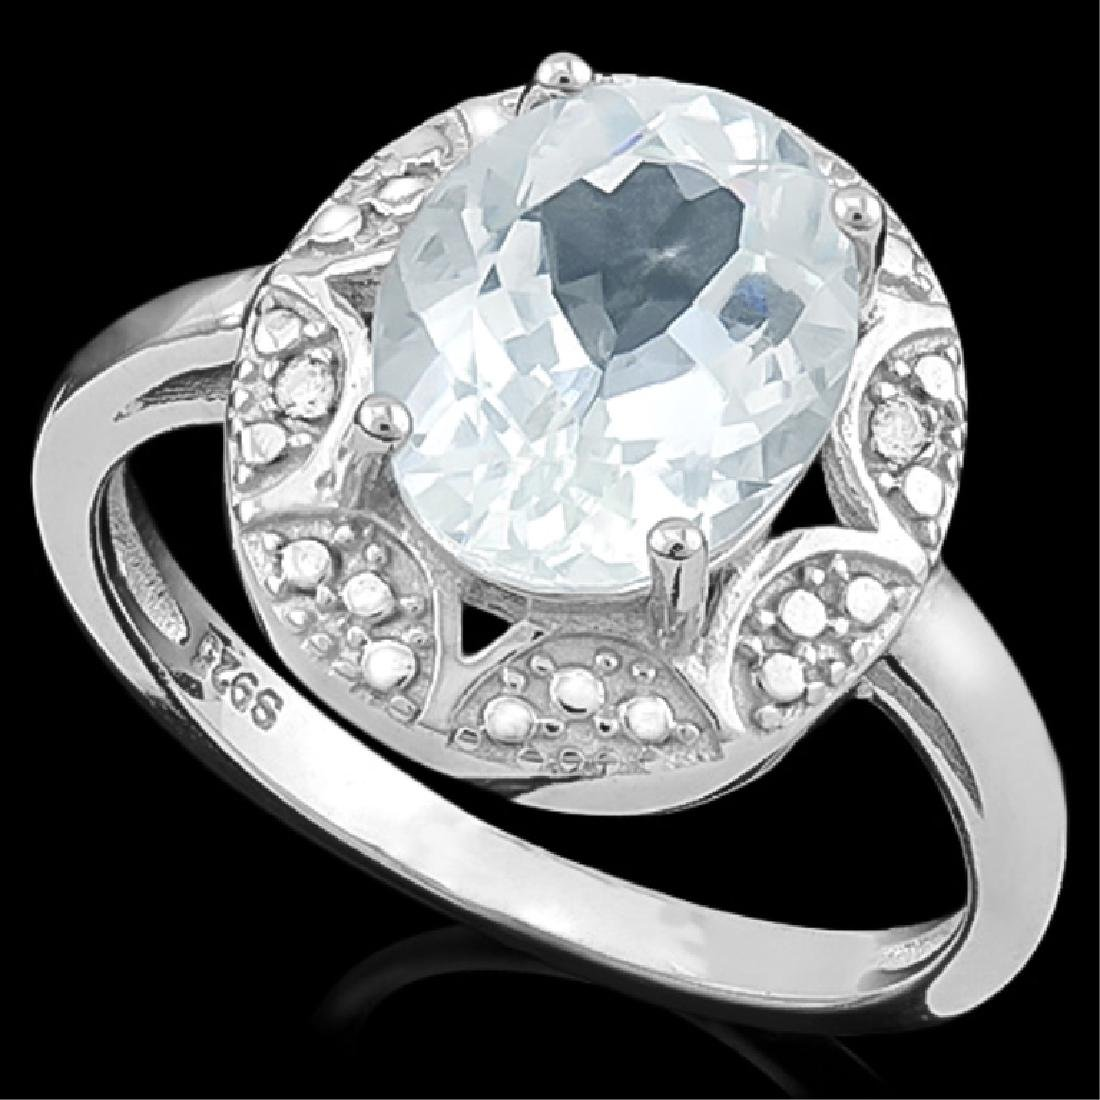 FABULOUS FACETED OVAL AQUAMARINE 2CT RING